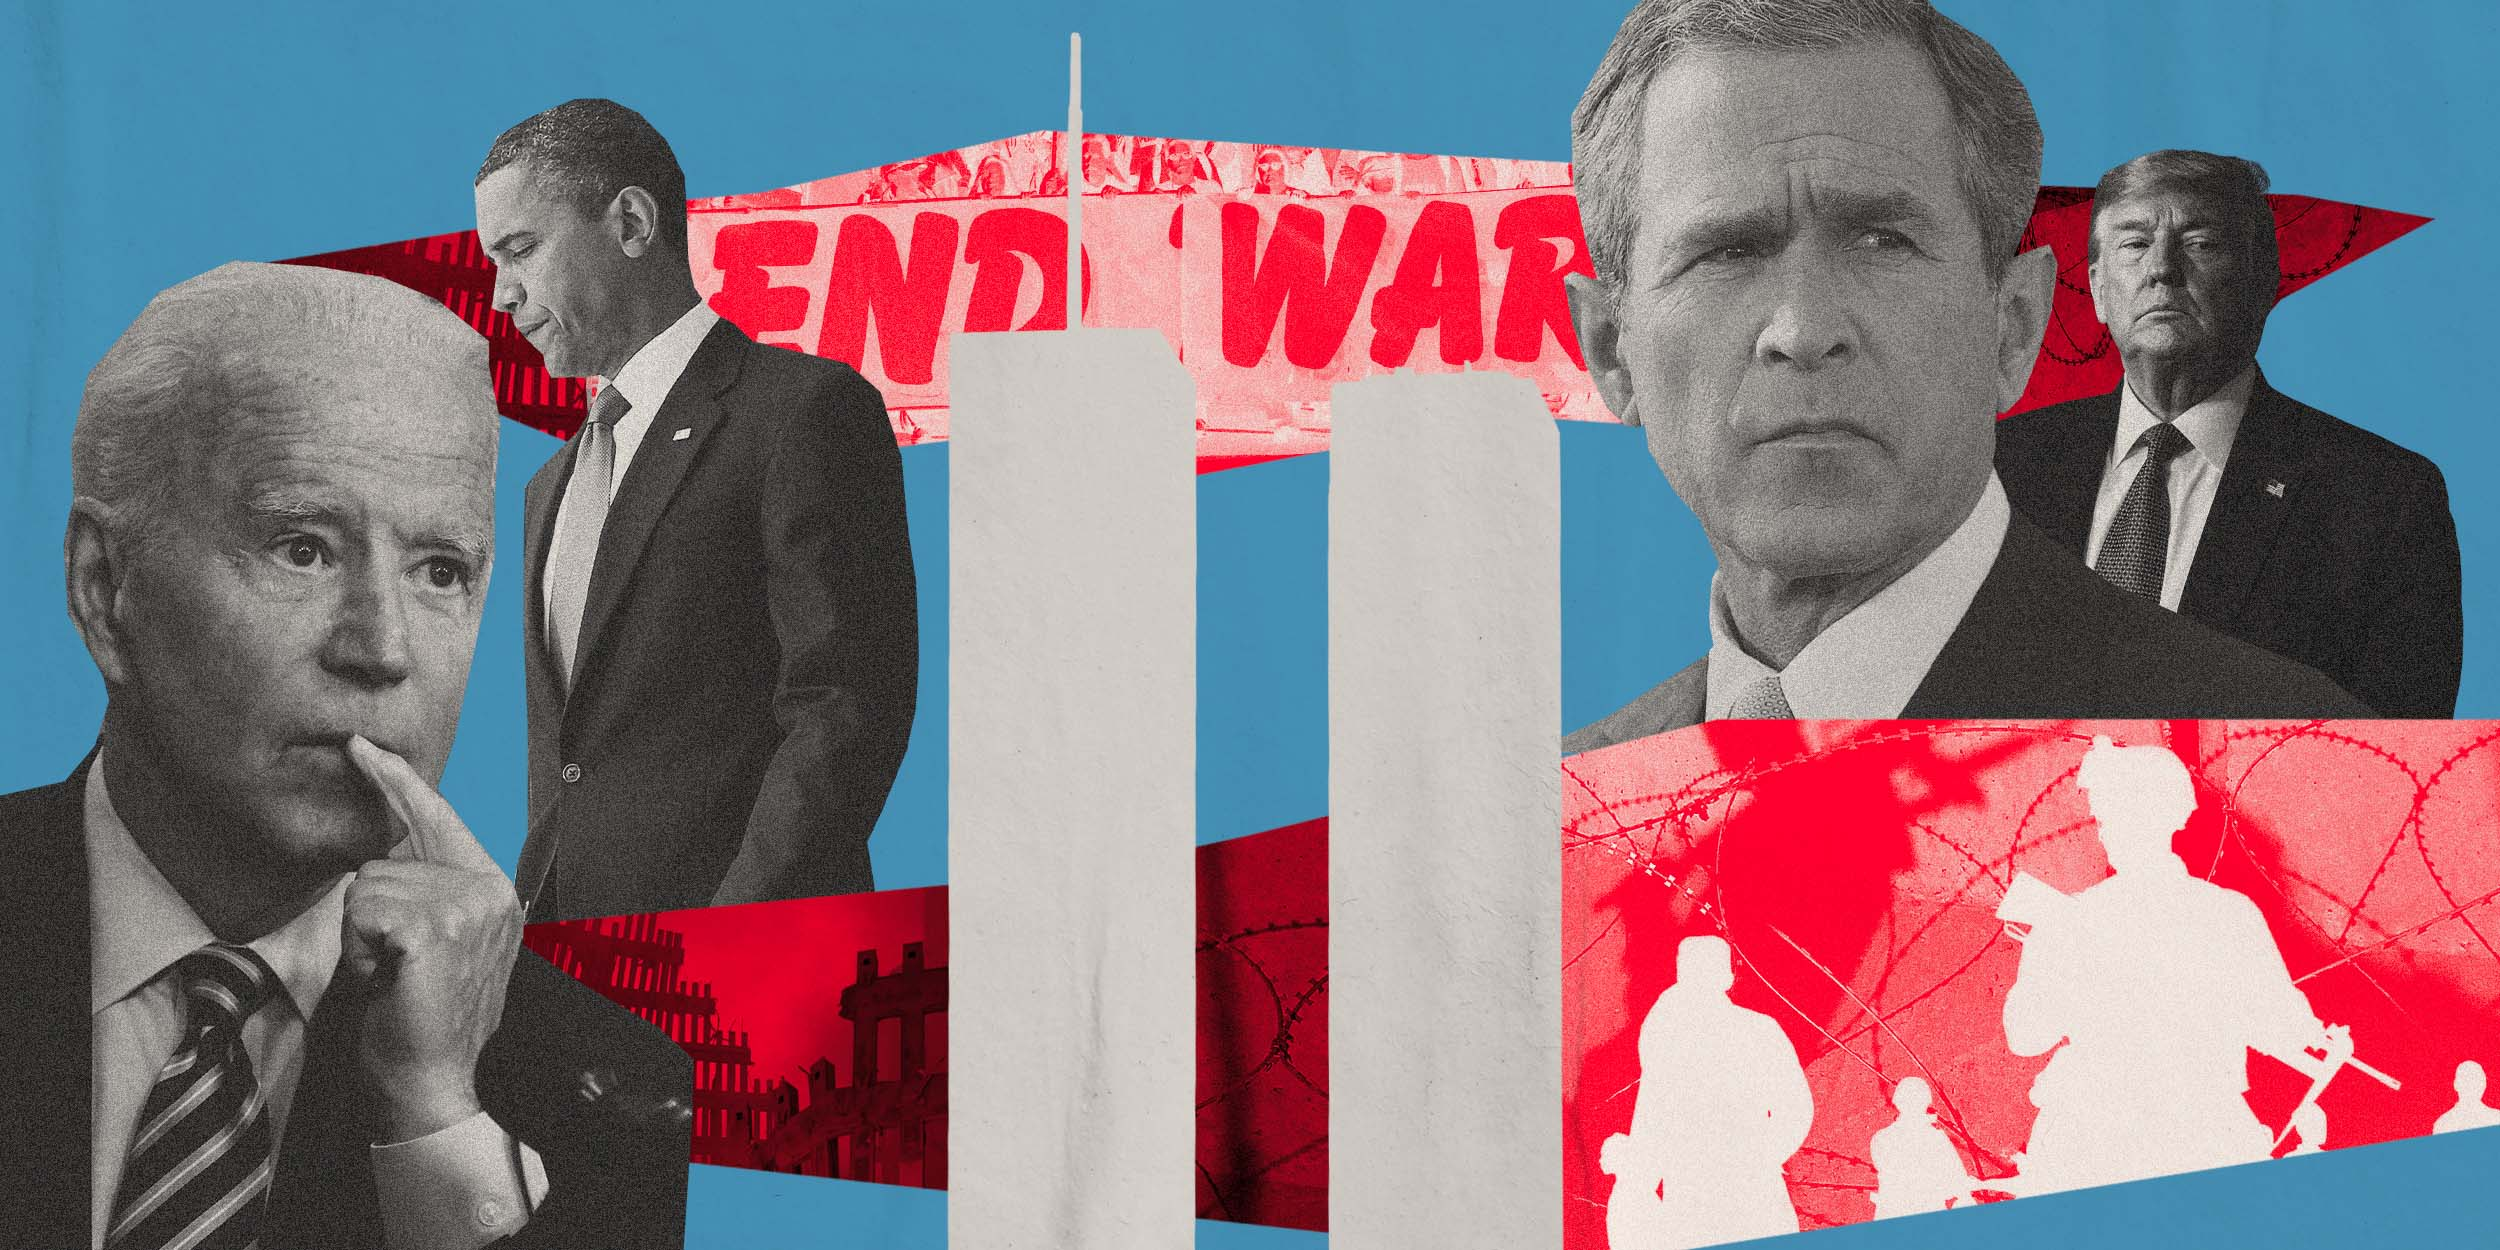 'A heavy price': Two decades of war, wariness and the post-9/11 security state